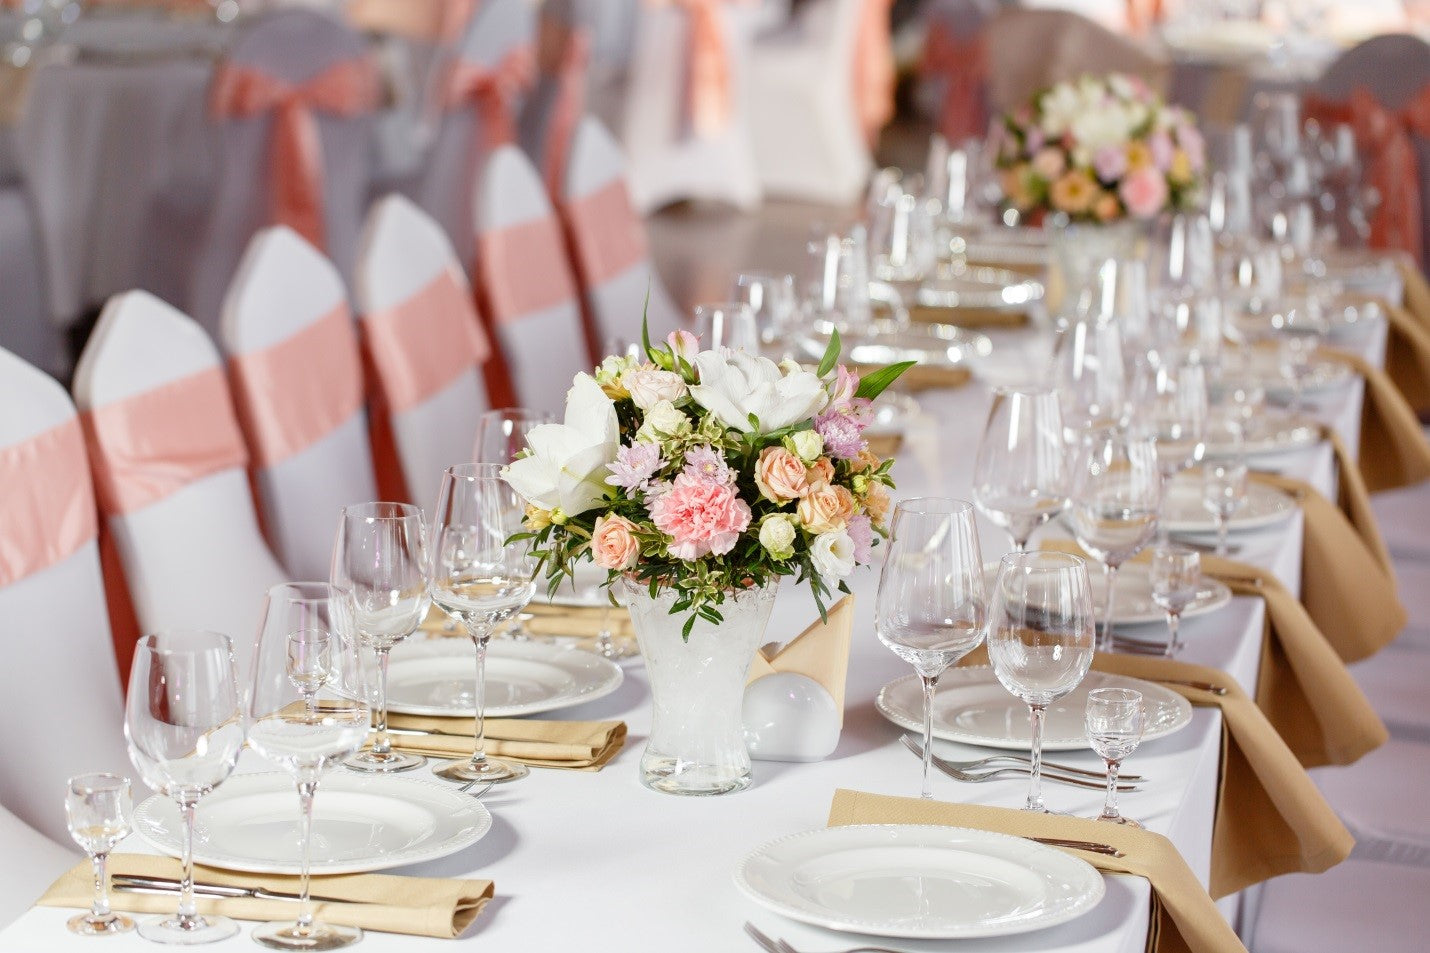 white tablecloths with white chair covers and pink chair sashes